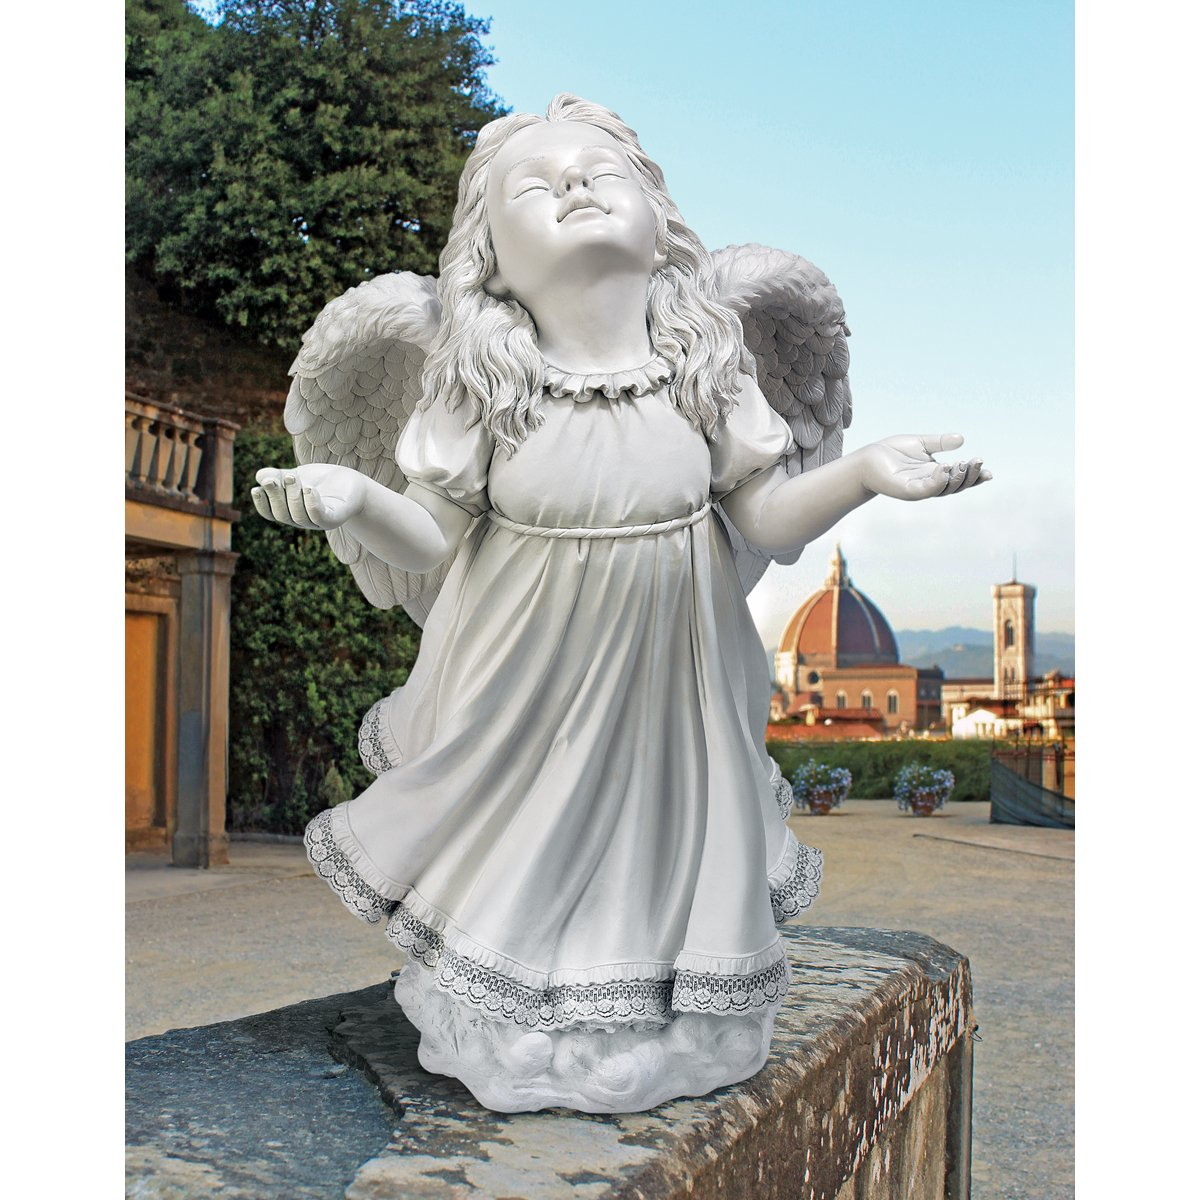 Small Angel Statues For Graves: Beautiful Angel Statues For Garden : Angel Sculpture